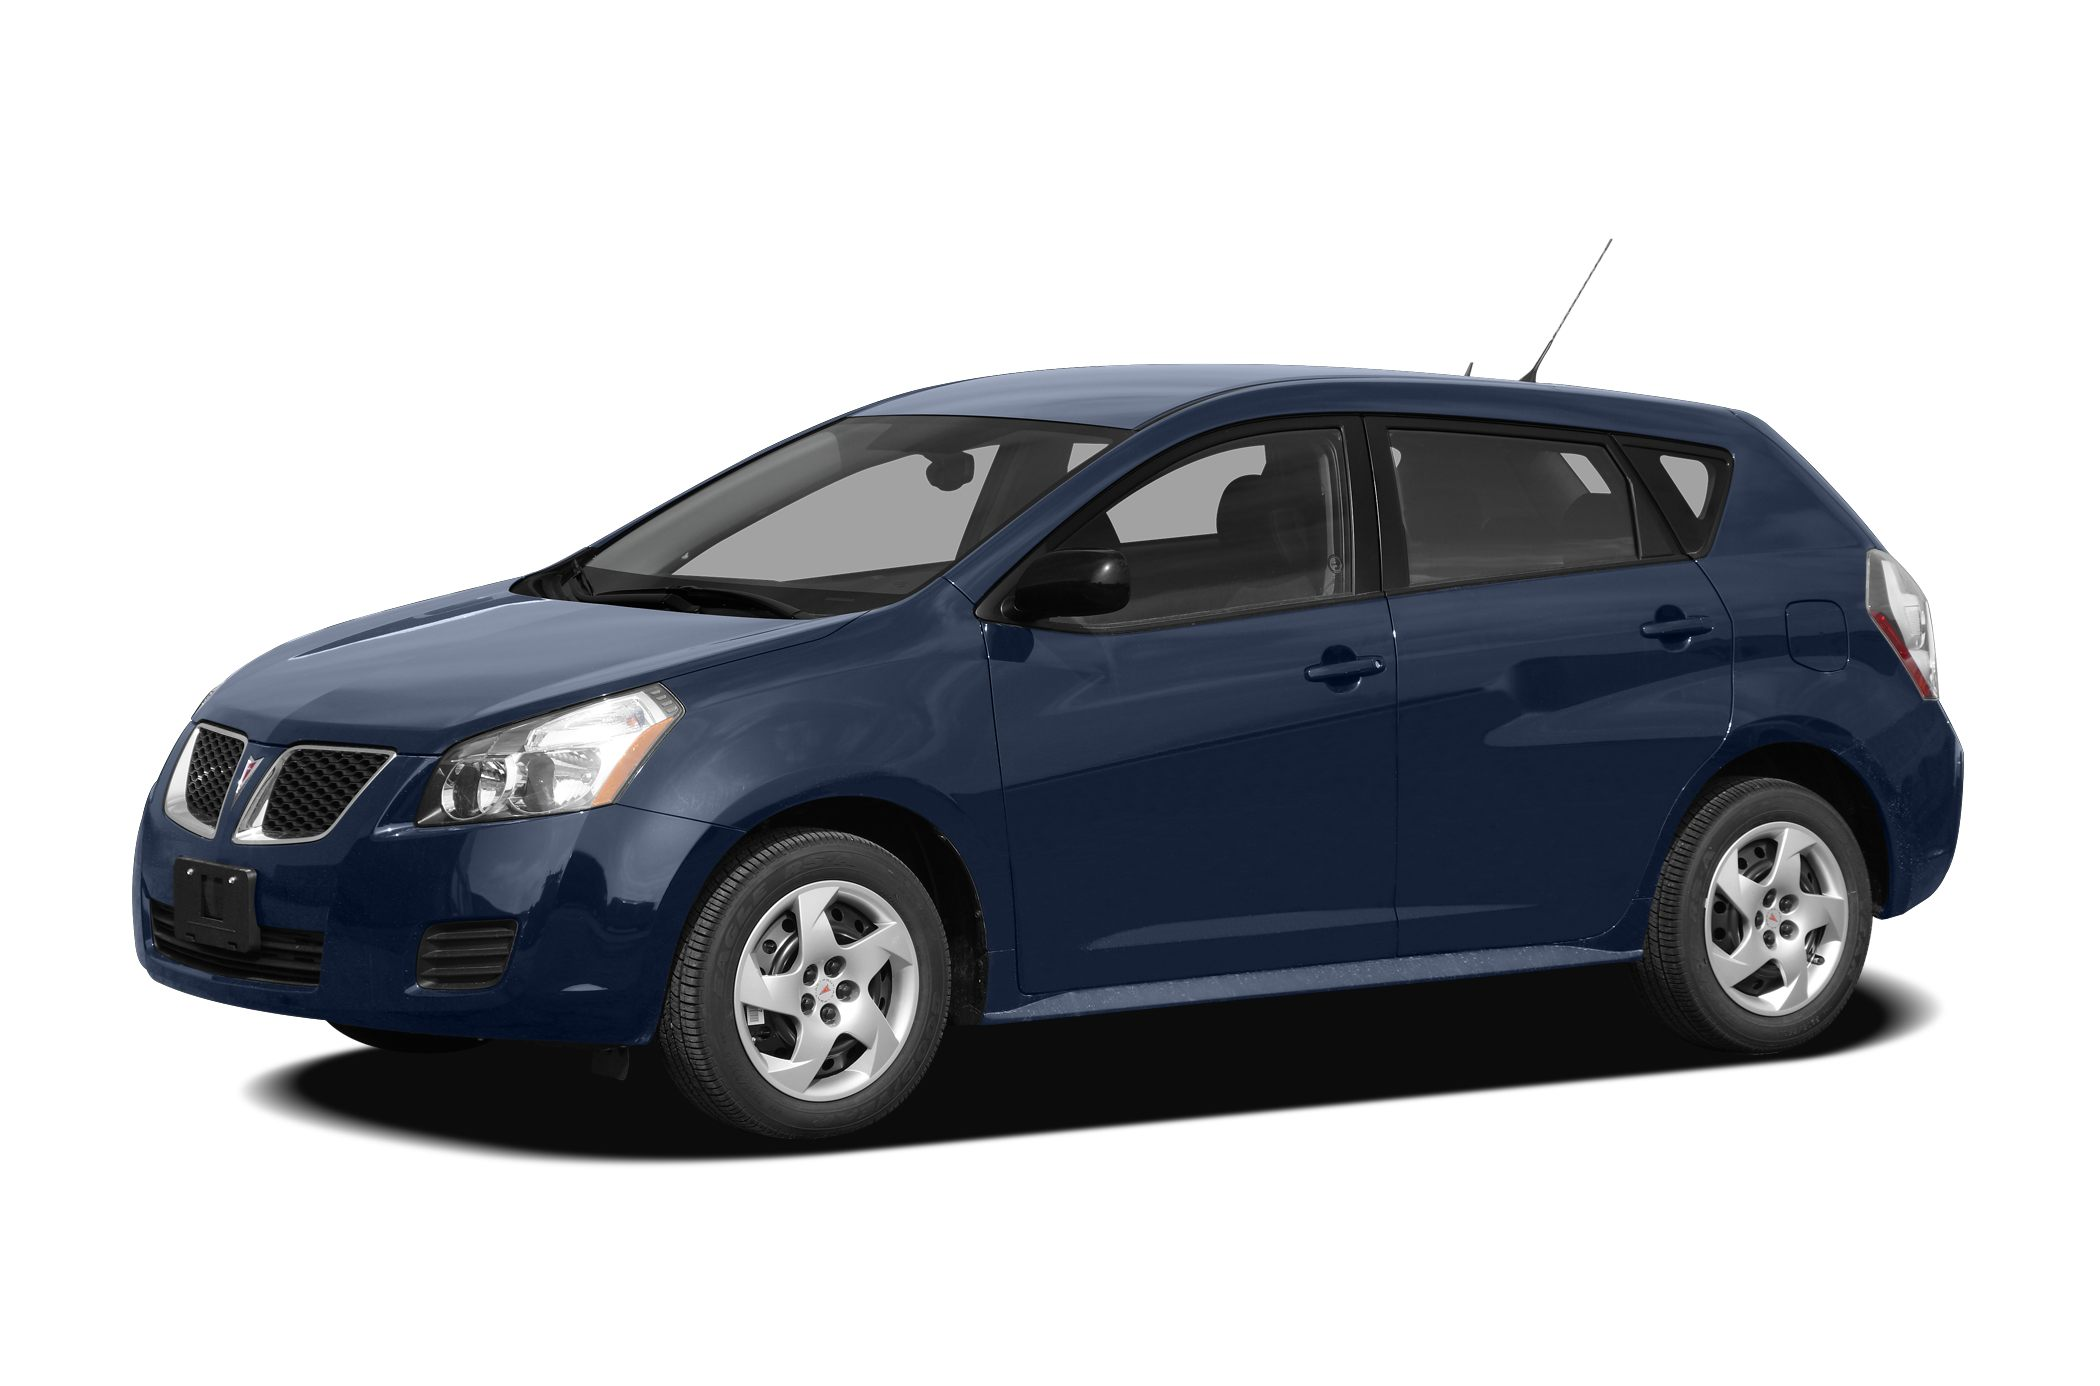 2009 Pontiac Vibe GT Hatchback for sale in Rochester for $10,890 with 74,596 miles.